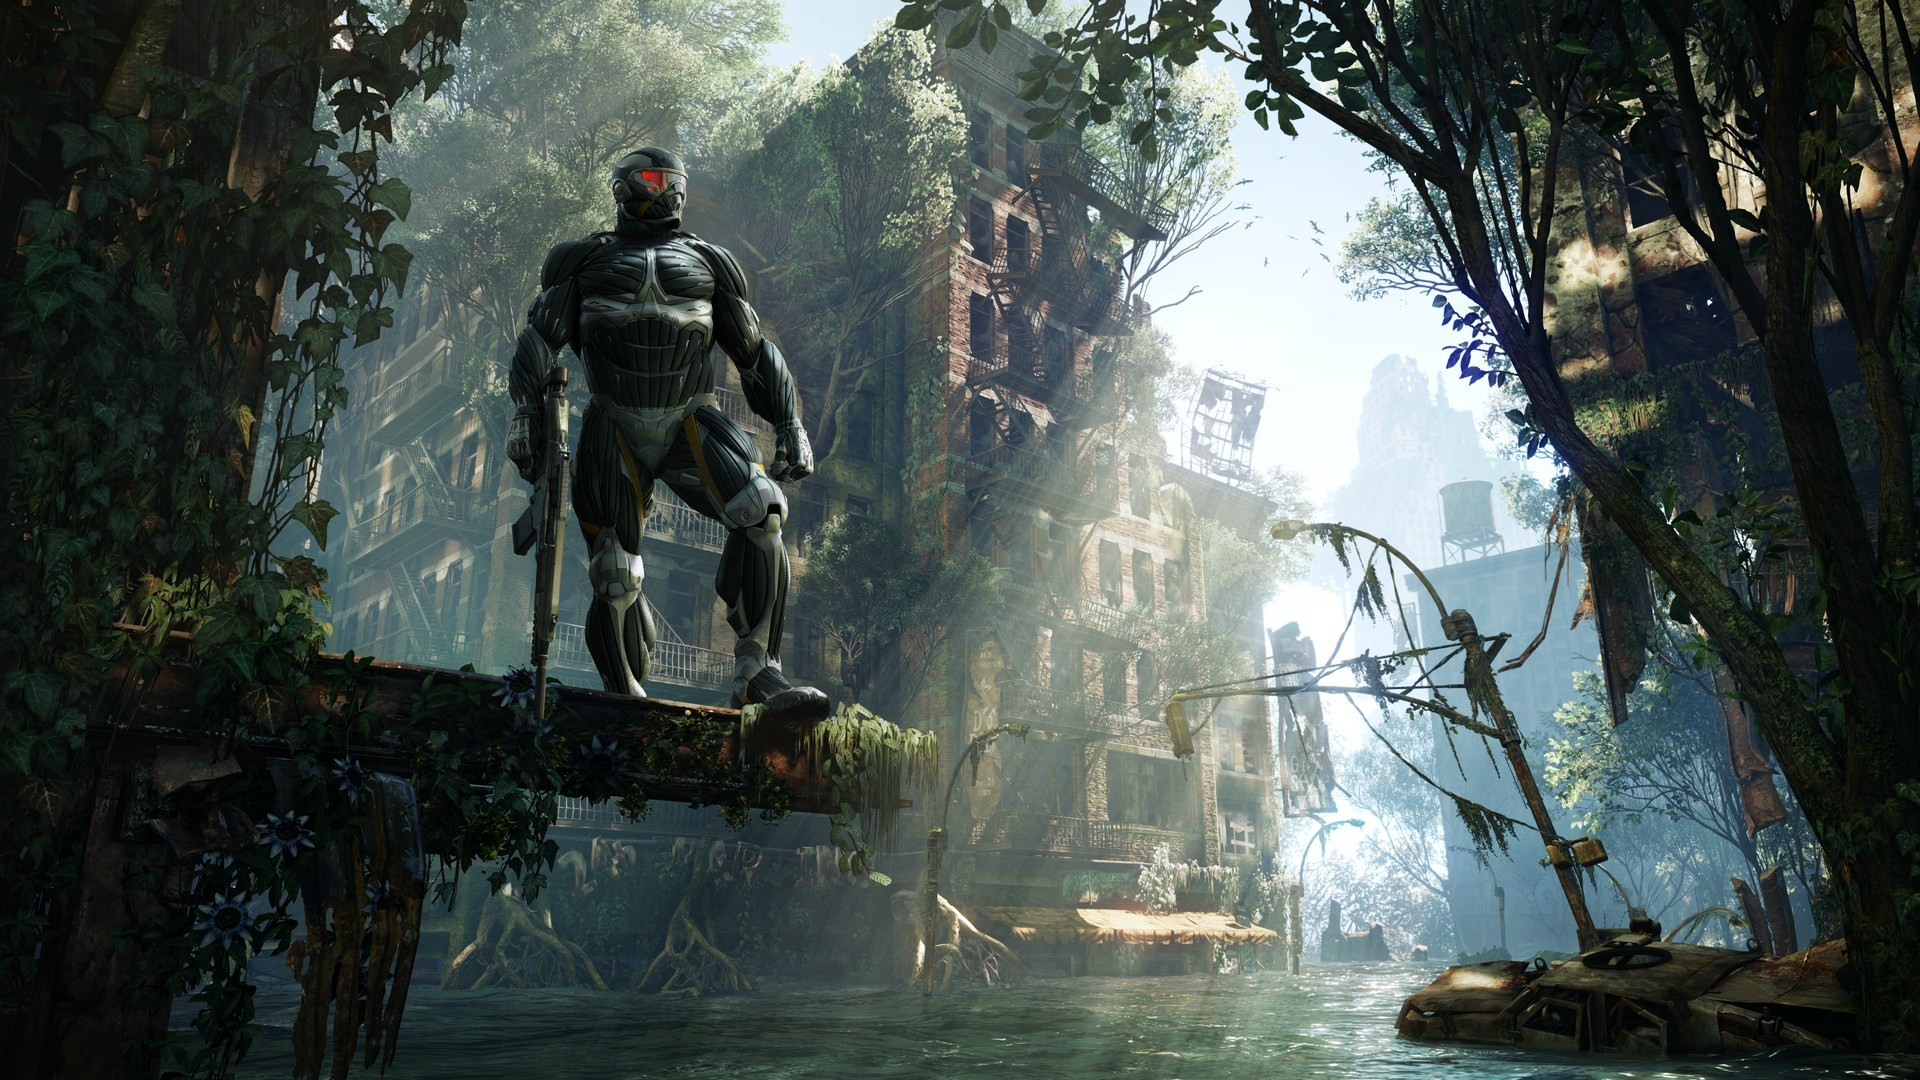 1920x1080 Wallpaper #3 Wallpaper from Crysis 3